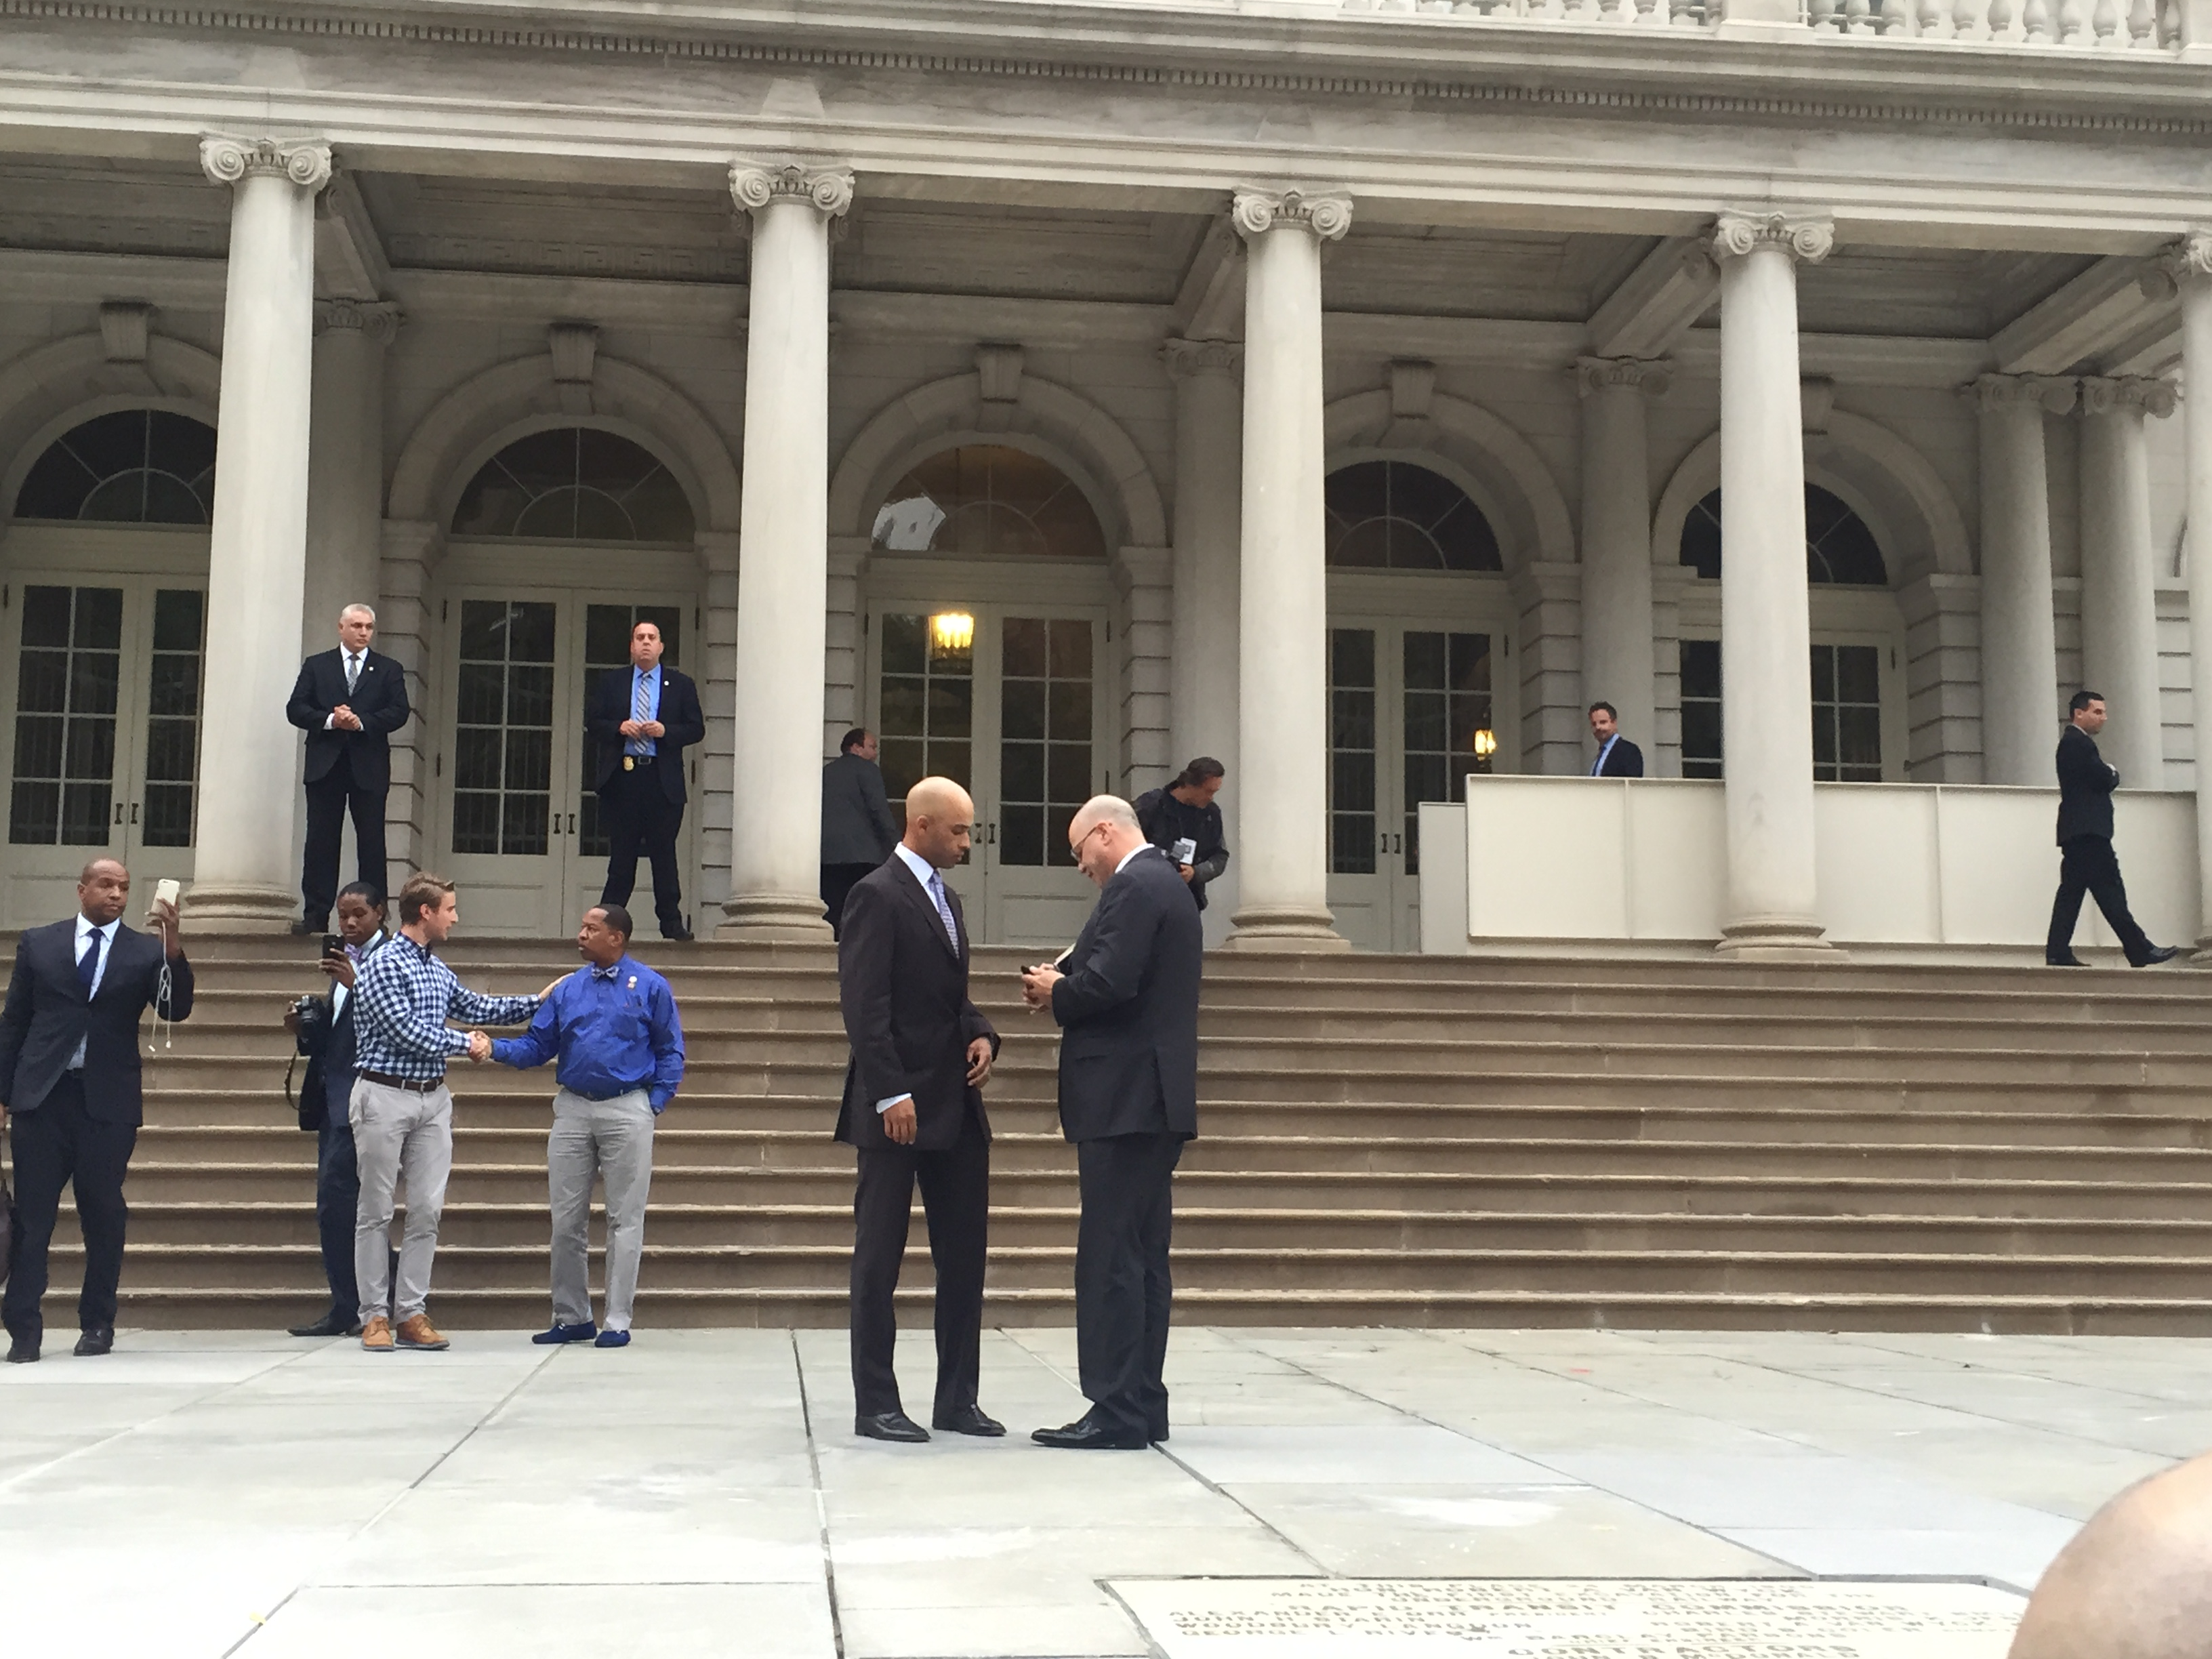 Tennis player James Blake talks with his lawyer Kevin Marino outside City Hall. (Photo: Jillian Jorgensen for Observer)